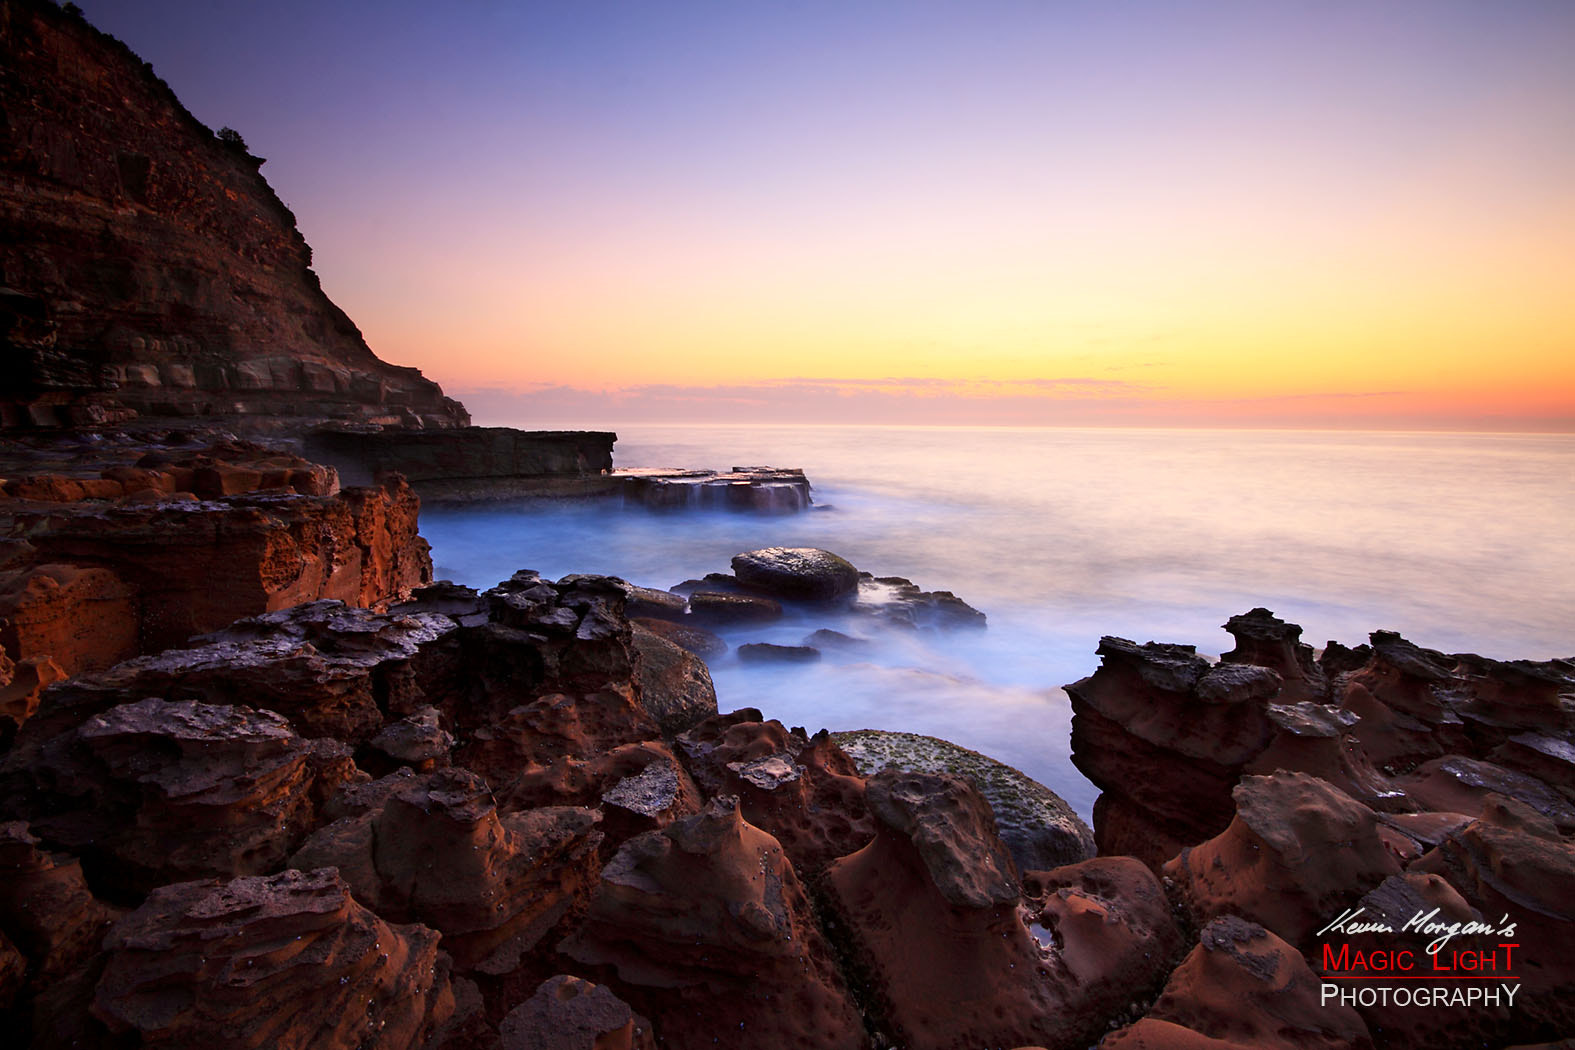 Photograph North Avoca Sunrise #2 by Kevin Morgan on 500px